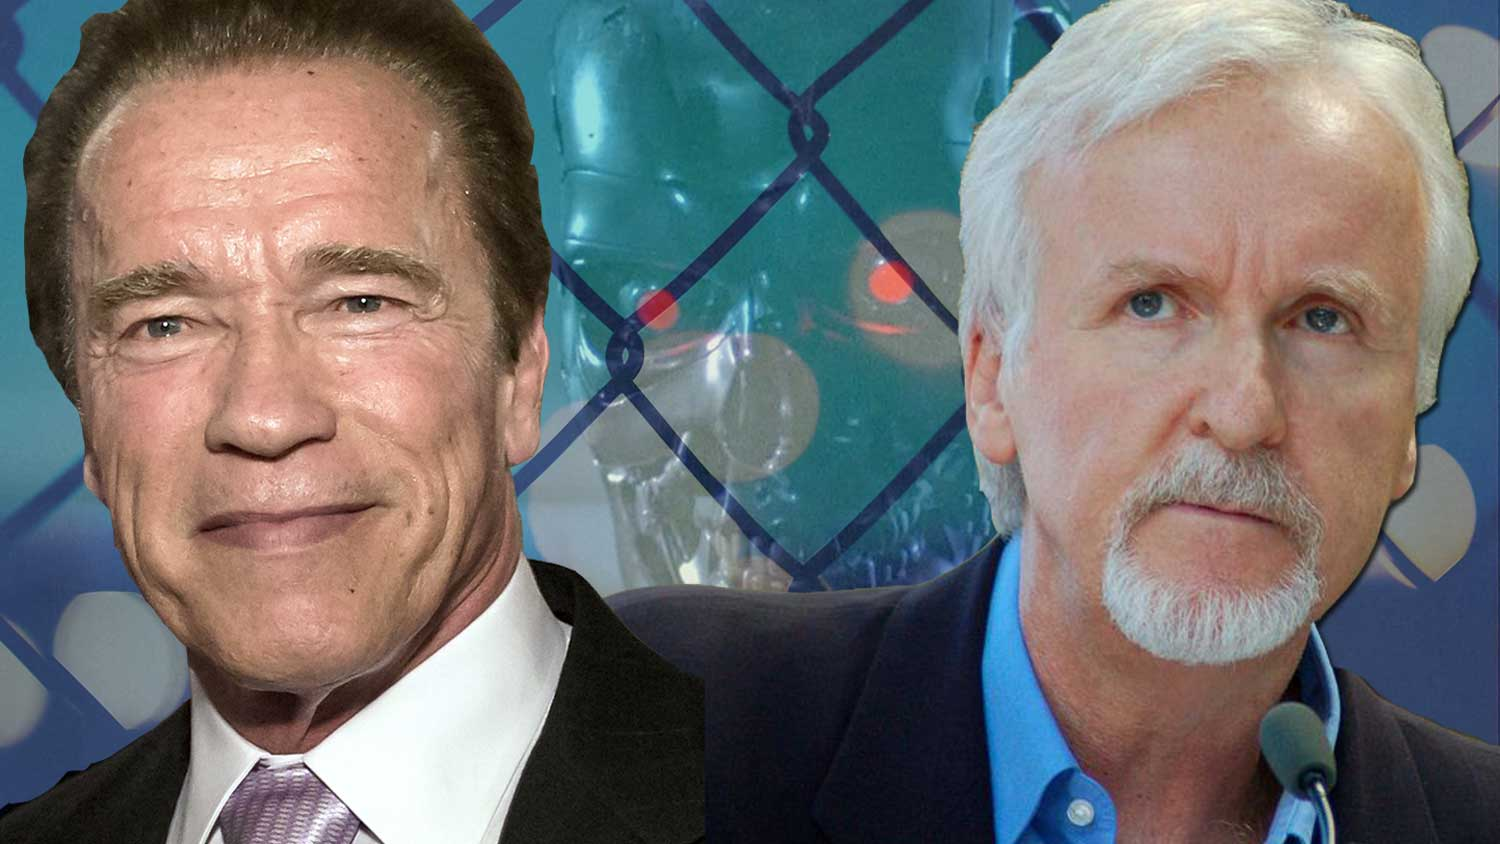 Are Schwarzenegger and Cameron Making a Vegan 'Terminator 6'?